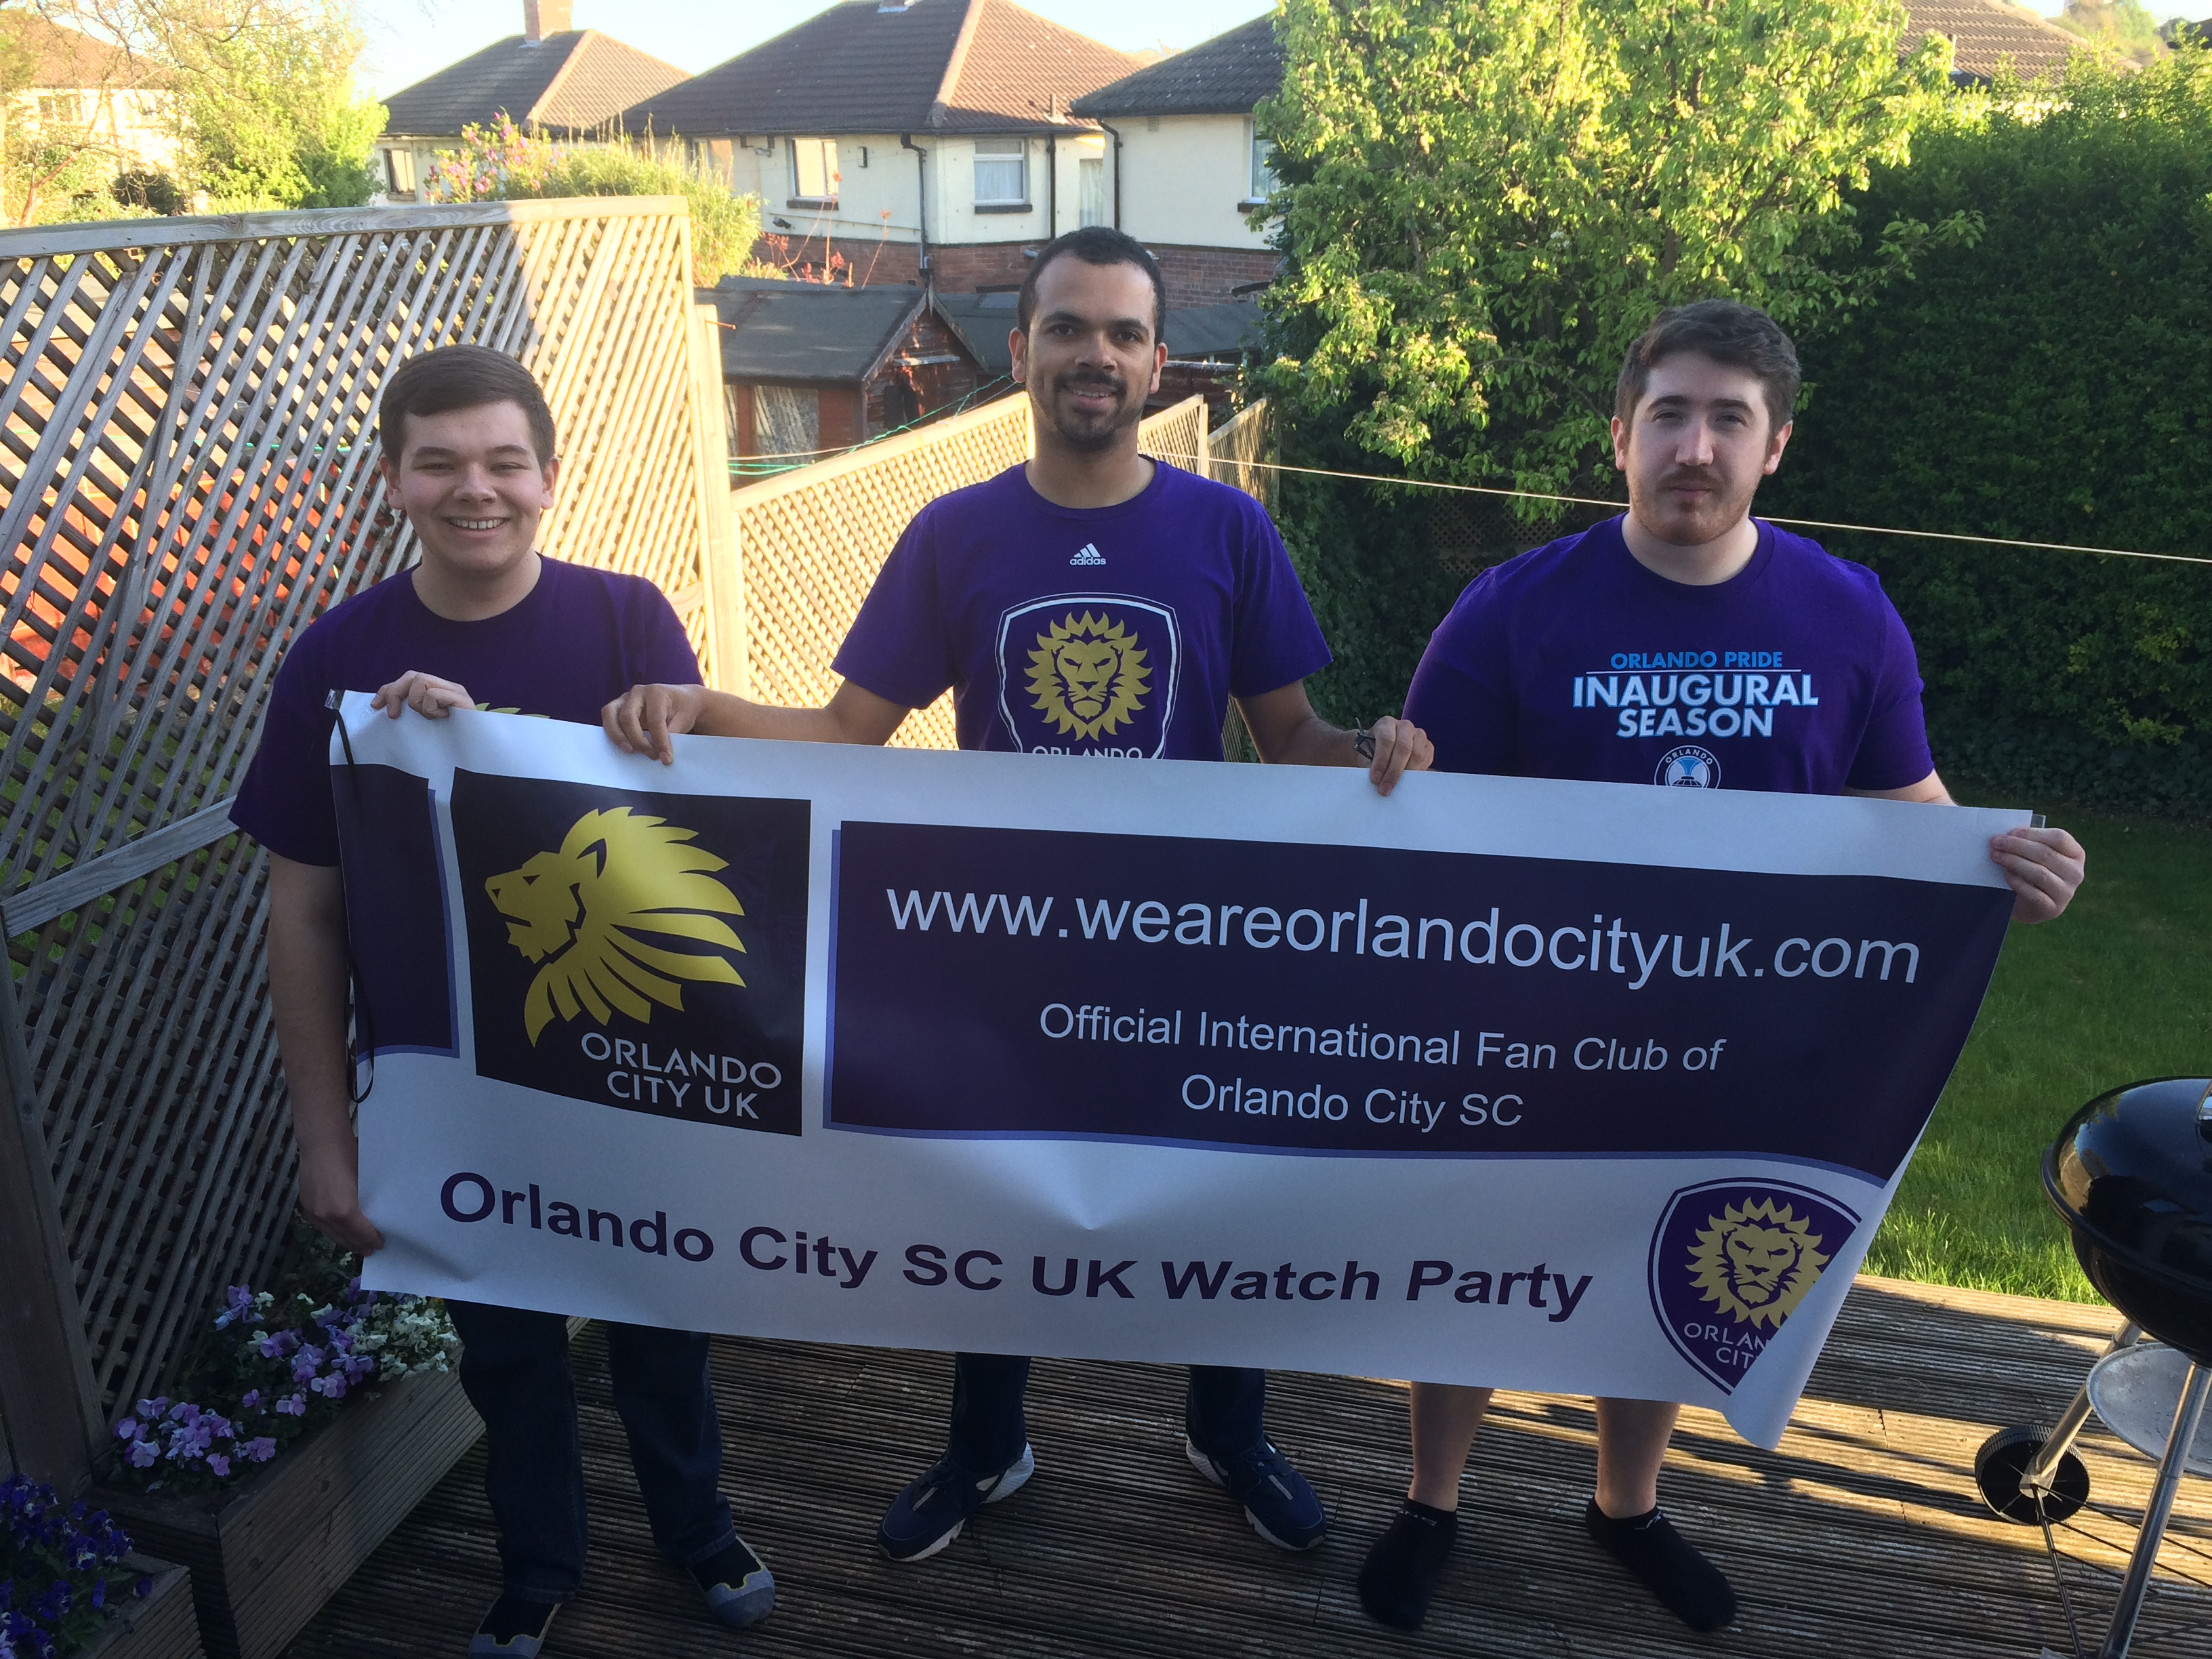 #NYCvORL Orlando City UK Watch Party 1 - 23.04.2017